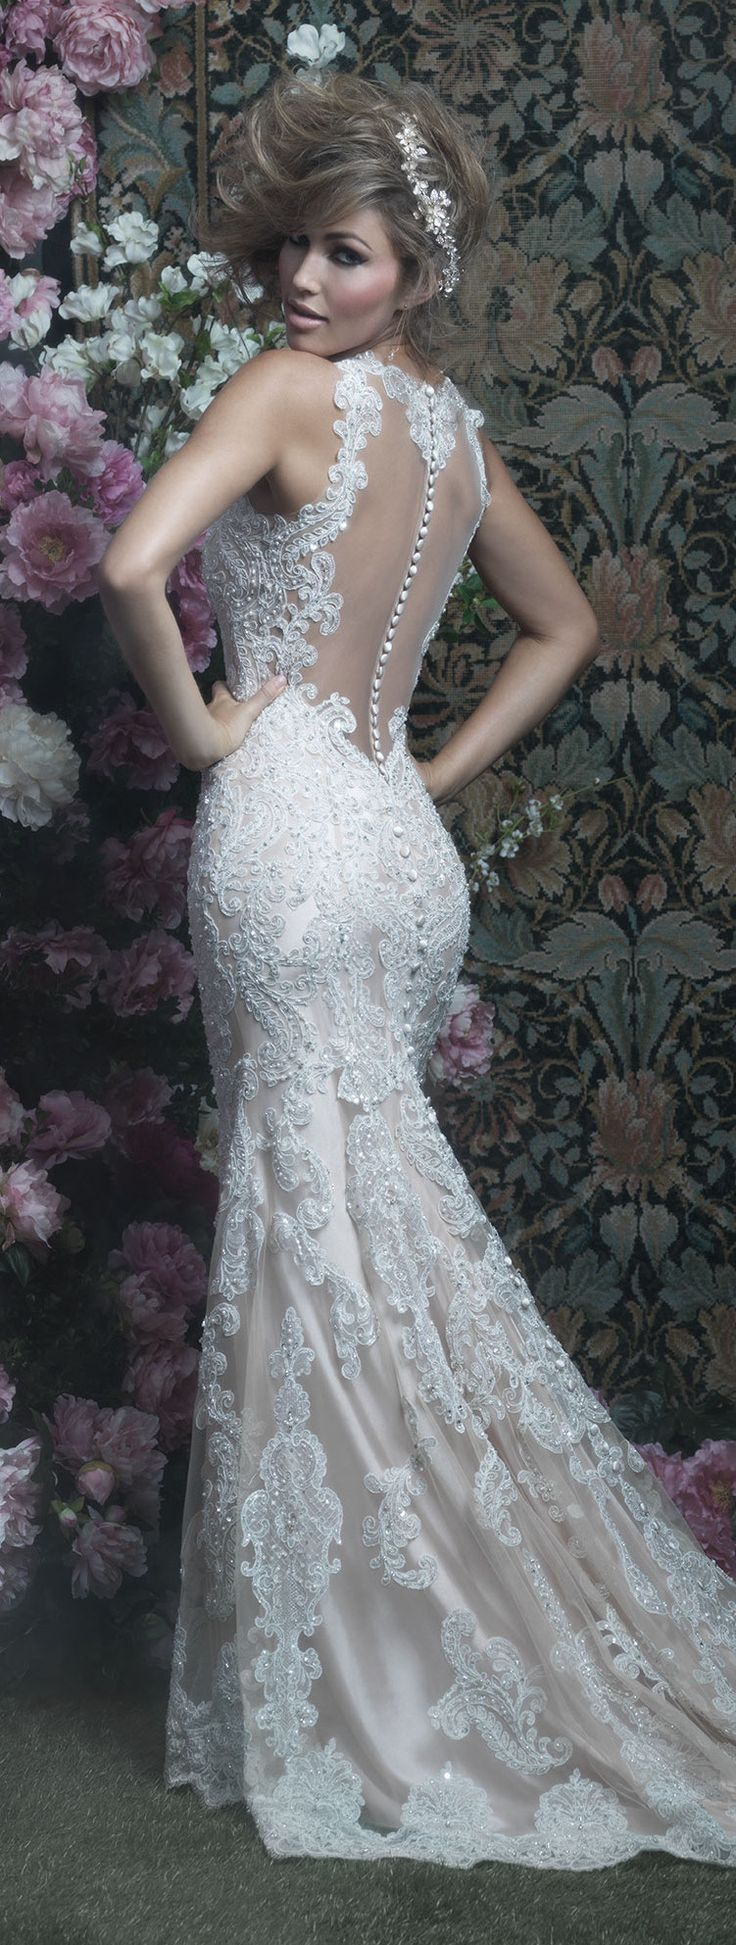 Lace back Wedding Dress by Allure Couture | @allurebridals